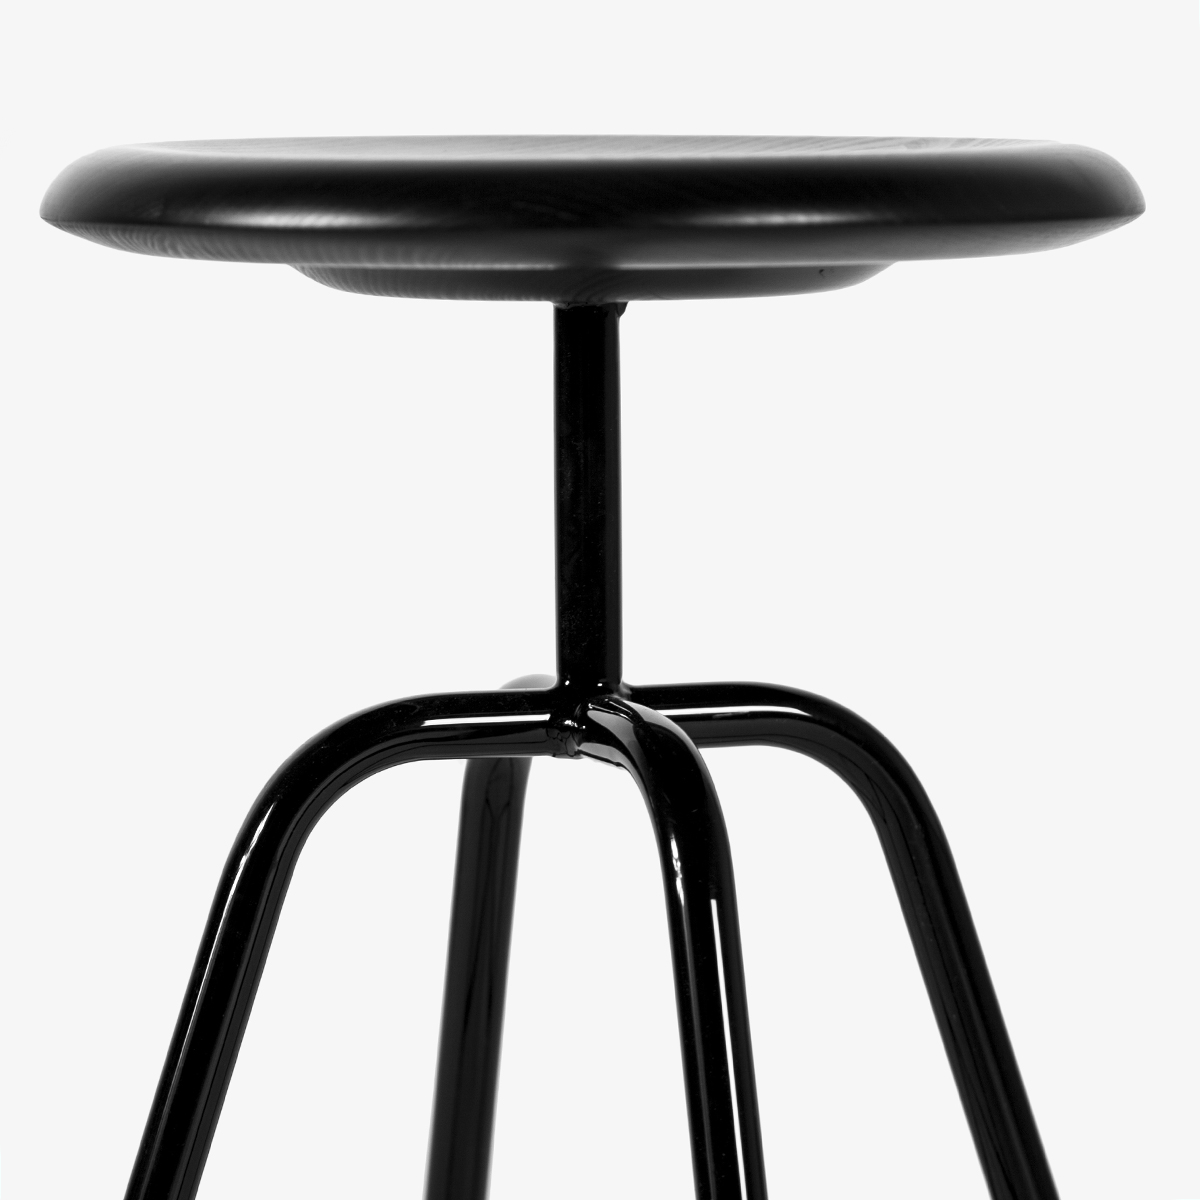 This stool is inspired by the designs and models of industrial furniture of the '30s.Simple, clear and timeless, the tubular steel frame is secure and robust on 4 legs. With its simple appearance, can be used in almost any home or professional places. The seat is made of solid wood shaped to ensure the right comfort.Simple, clear and timeless, the tubular steel frame is secure and robust on 4 legs. With its simple appearance, can be used in almost any home or professional places. The seat is made of solid wood shaped to ensure the right comfort.Simple, clear and timeless, the tubular steel frame is secure and robust on 4 legs. With its simple appearance, can be used in almost any home or professional places. The seat is made of solid wood shaped to ensure the right comfort.